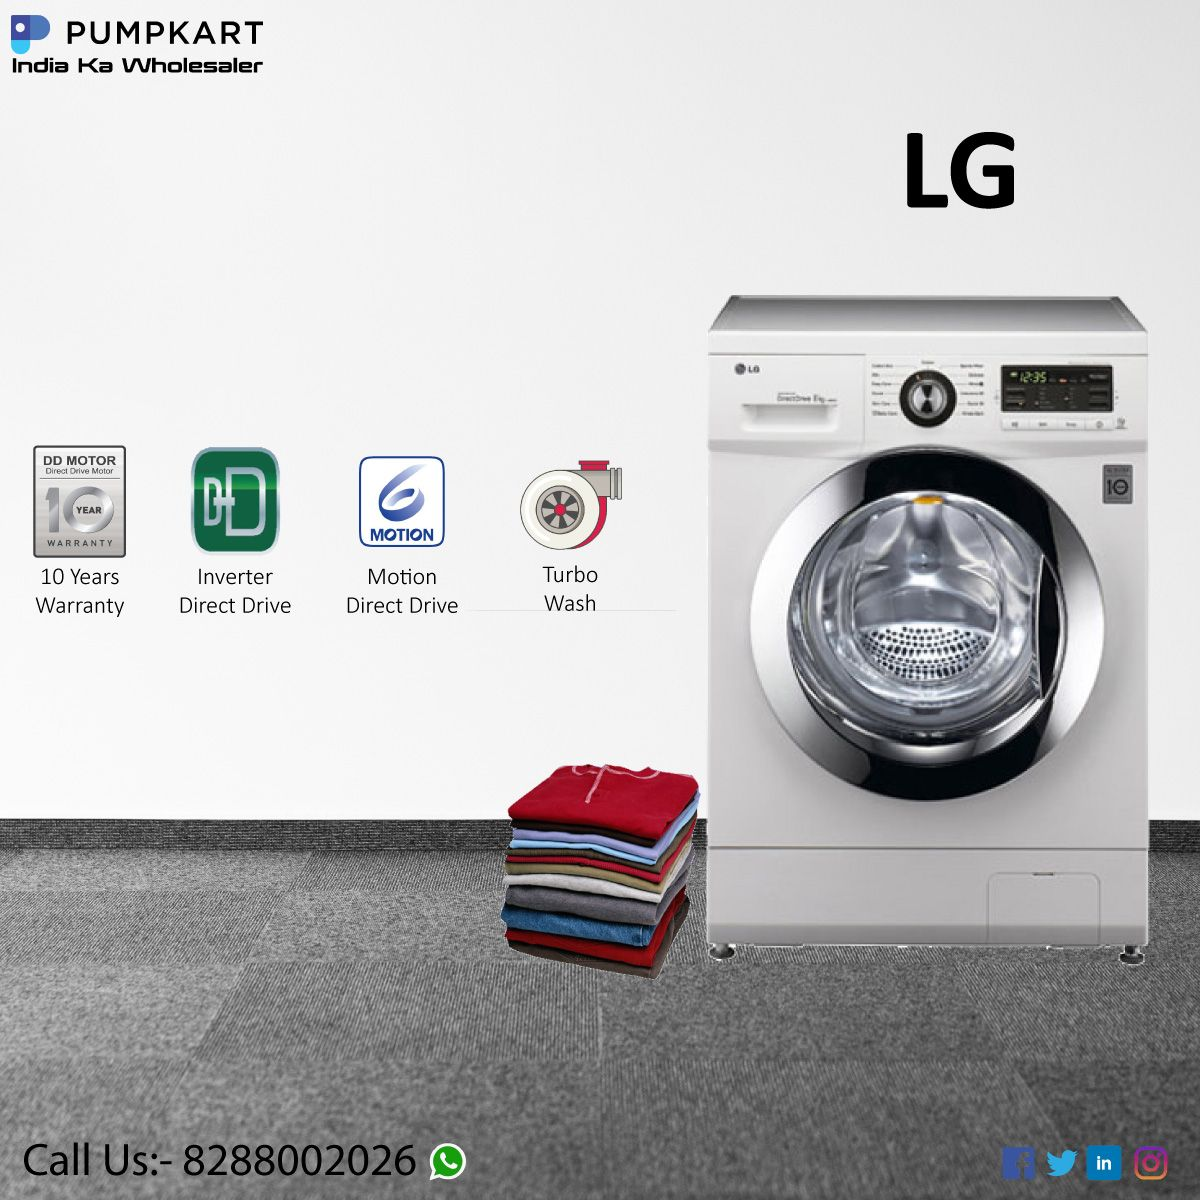 Give Comfort To Your Clothes Machine Pumpkart Lg 2020 In 2020 Pumpk Machine Home Appliances